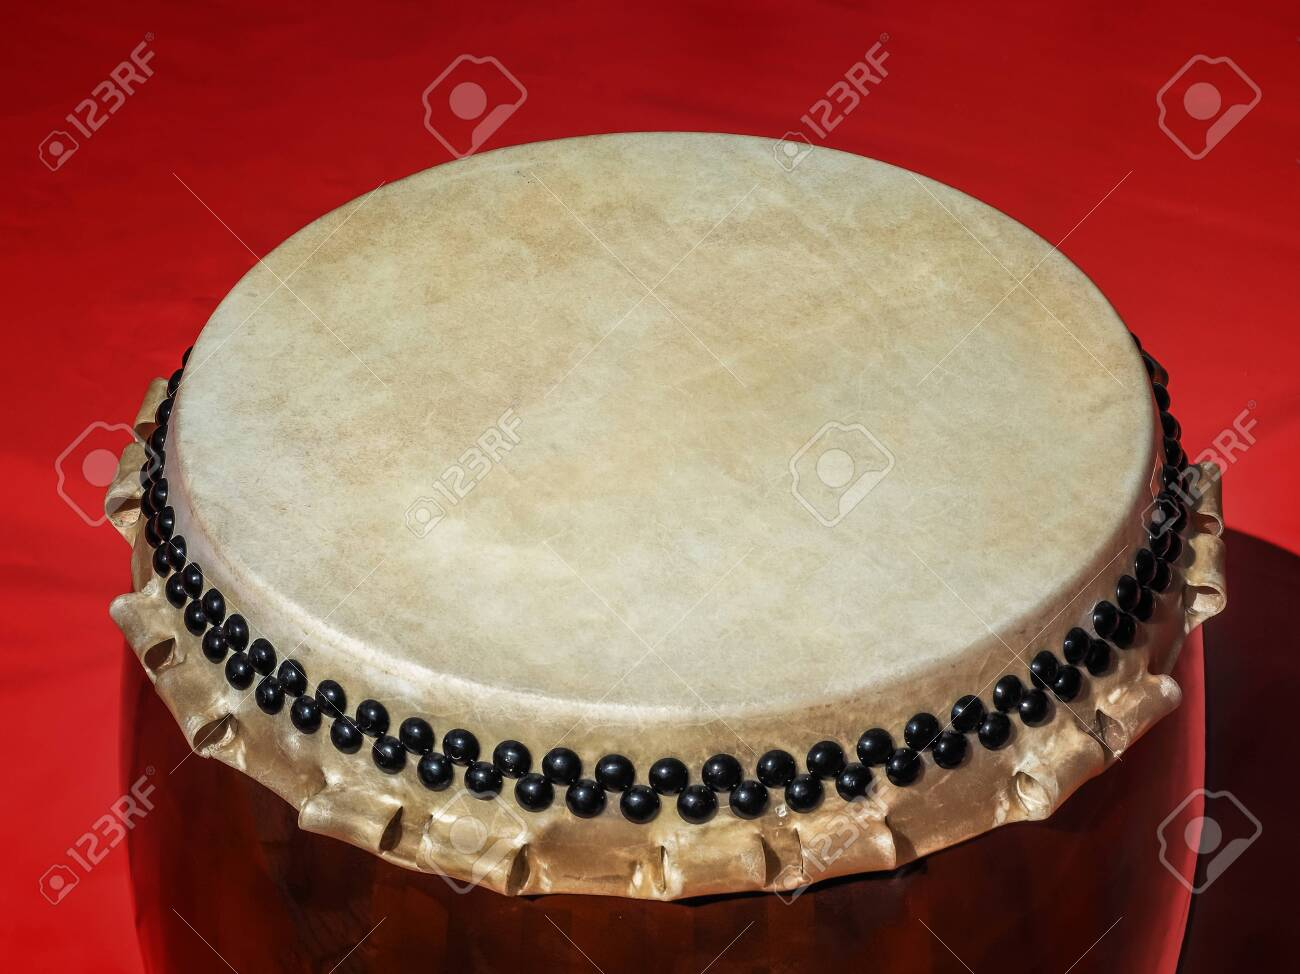 A Big Taiko Drum O daiko On Isolated Red Background Musical 1300x974